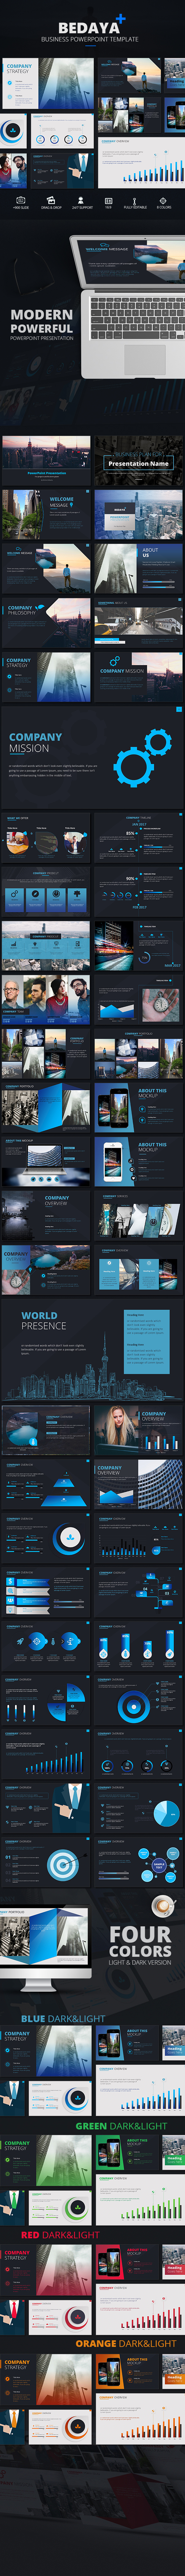 Bedaya Business Google Slides Template - Google Slides Presentation Templates